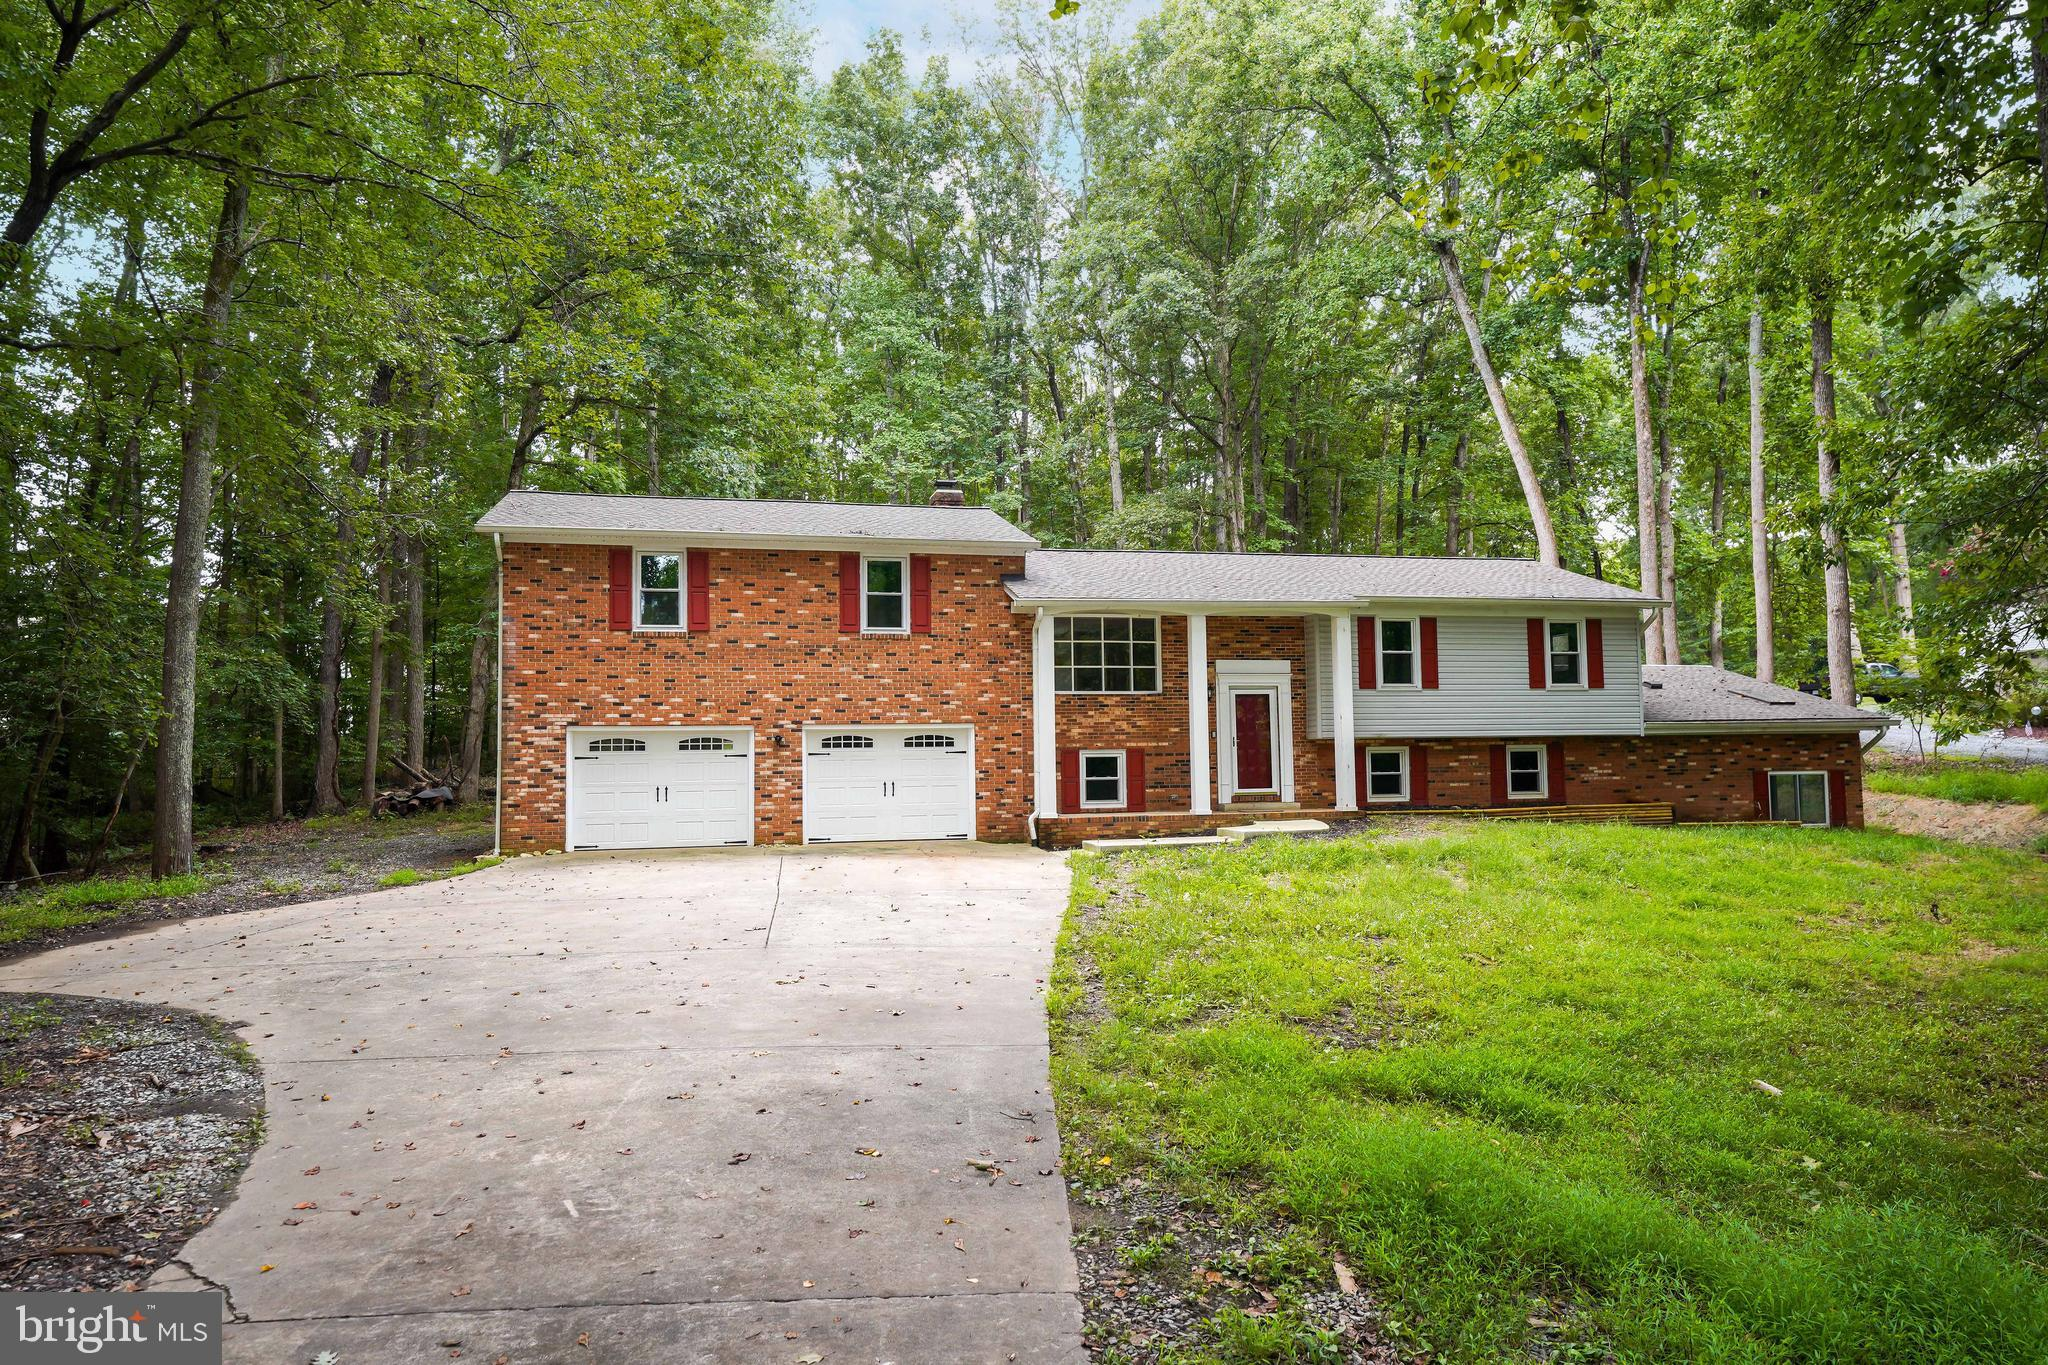 TRI-LEVEL WITH ACREAGE AND NO HOA***HOT TUB, BAR, SEPARATE APARTMENT WITH KITCHENETTE, TWO DECKS, 2 CAR GARAGE, UPDATED APPLIANCES -LOTS OF POTENTIAL HERE***VACANT AND READY FOR QUICK SETTLEMENT.